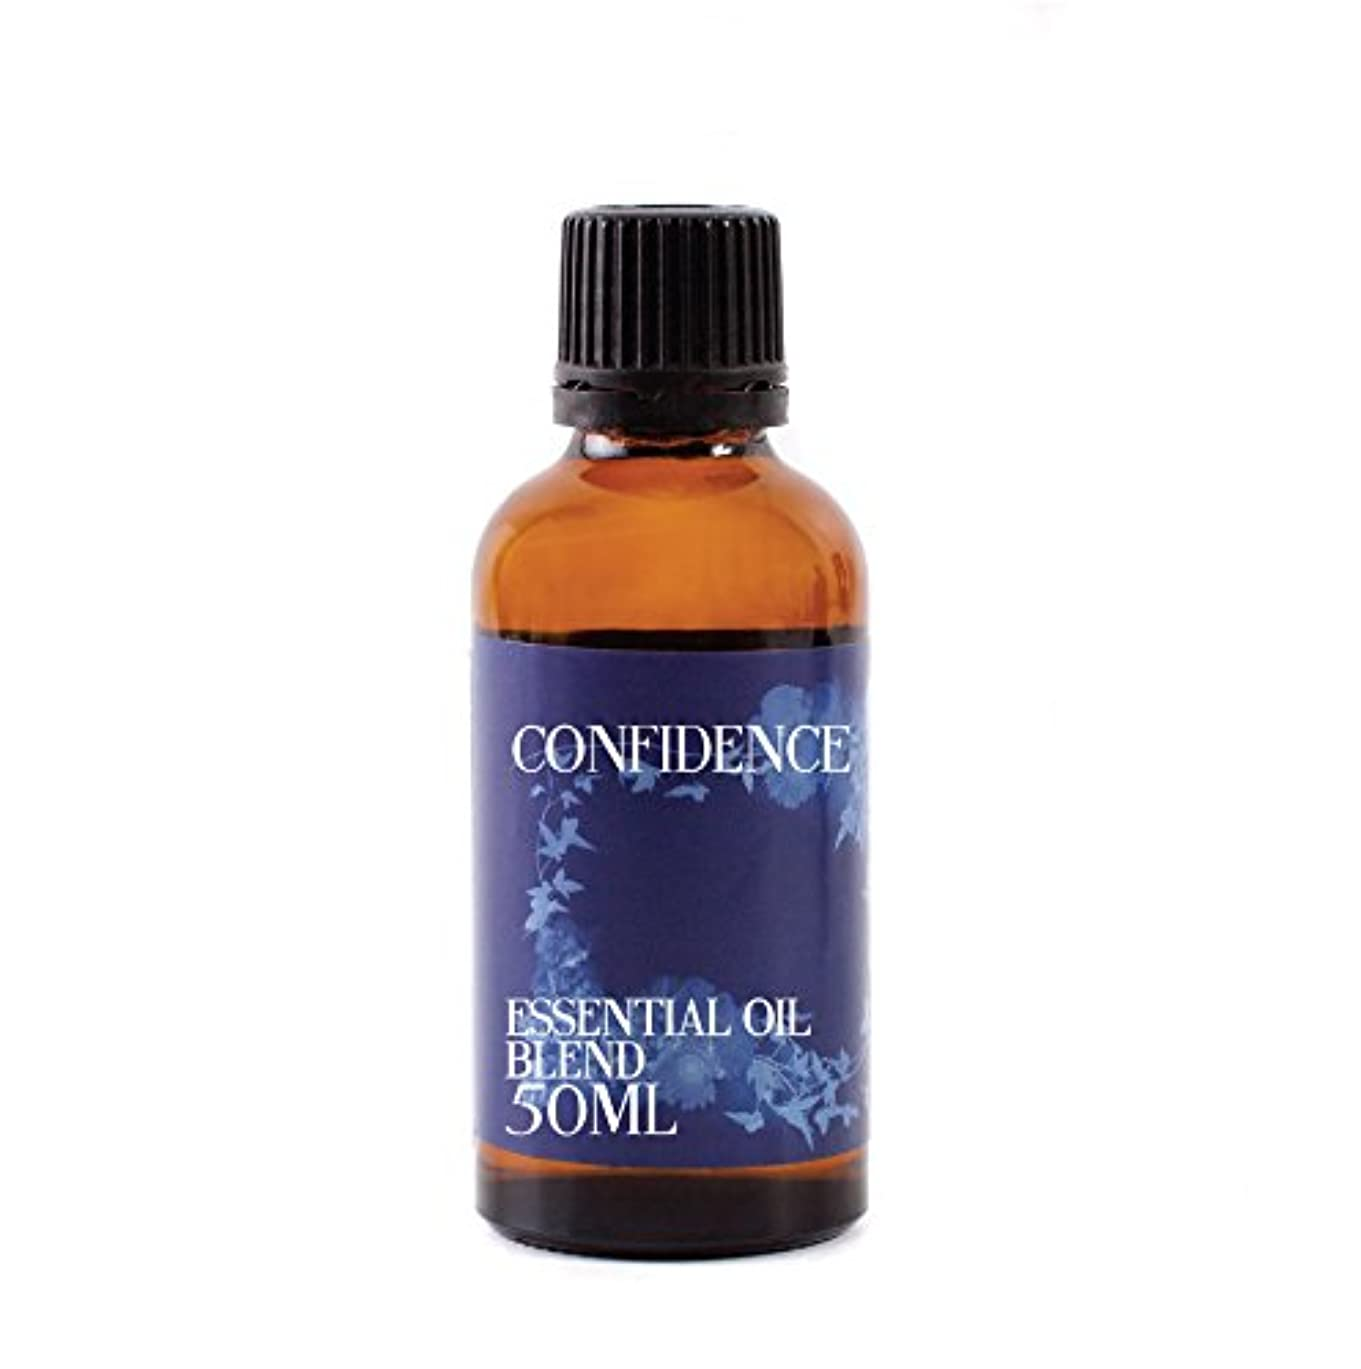 リーフルートブースMystic Moments | Confidence Essential Oil Blend - 50ml - 100% Pure